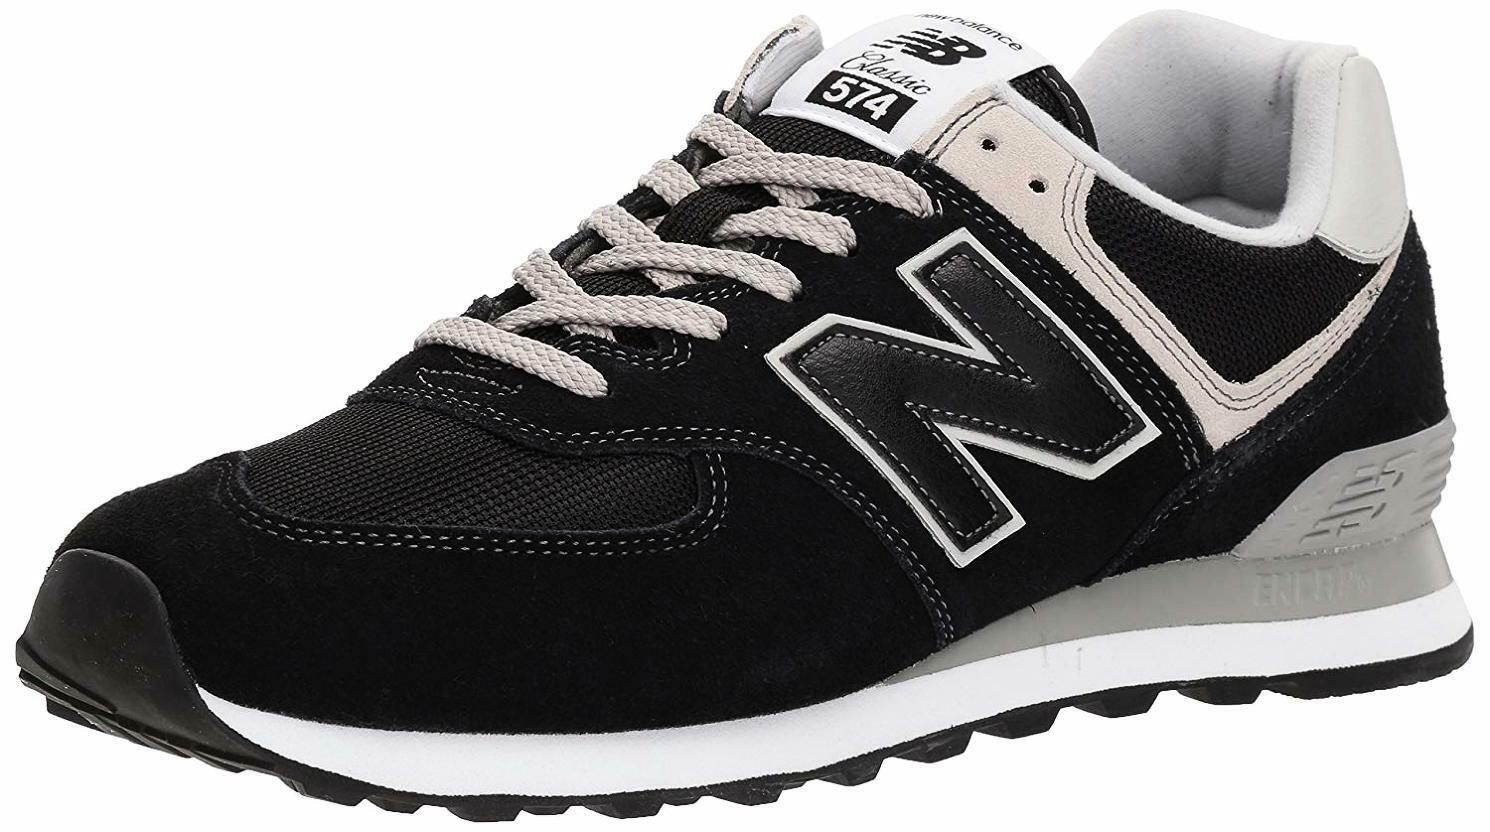 New Balance Men's Iconic 574 Sneaker - Choose SZ color